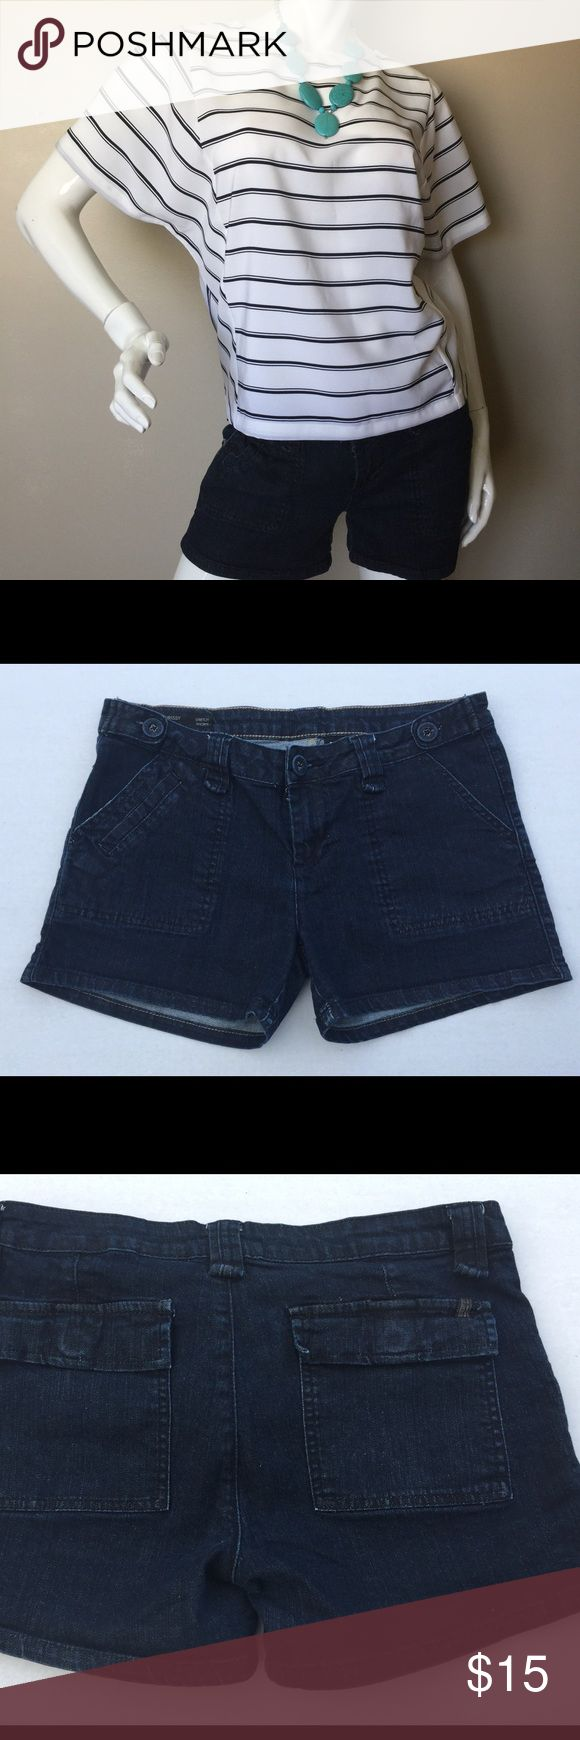 Buffalo David Bitton denim stretch shorts mid rise Denim shorts by Buffalo David Bitton Chrissy Style mid rise stretch shorts size 29. Super cute and comfortable in time for spring. Buffalo David Bitton Shorts Jean Shorts